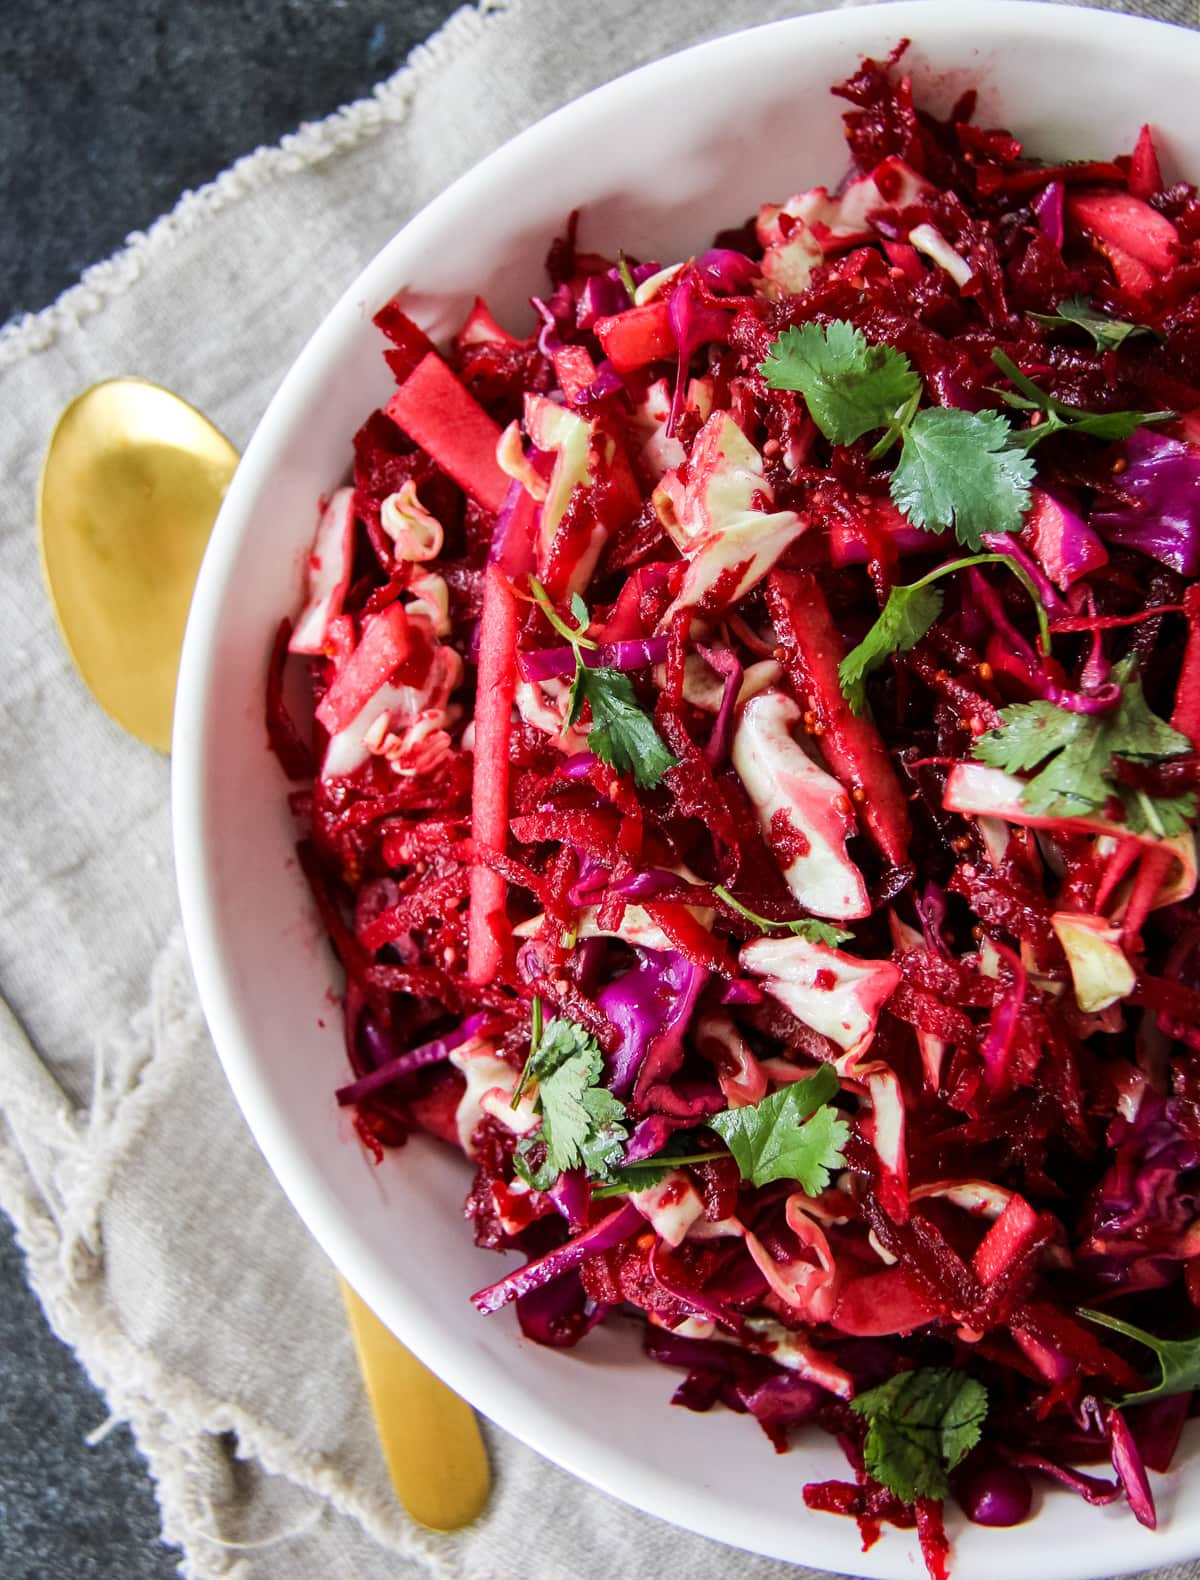 a top down view of a bowl full of apple beet slaw. the bowl is sitting on a brown linen napkin and dark background. next to the bowl is a gold spoon